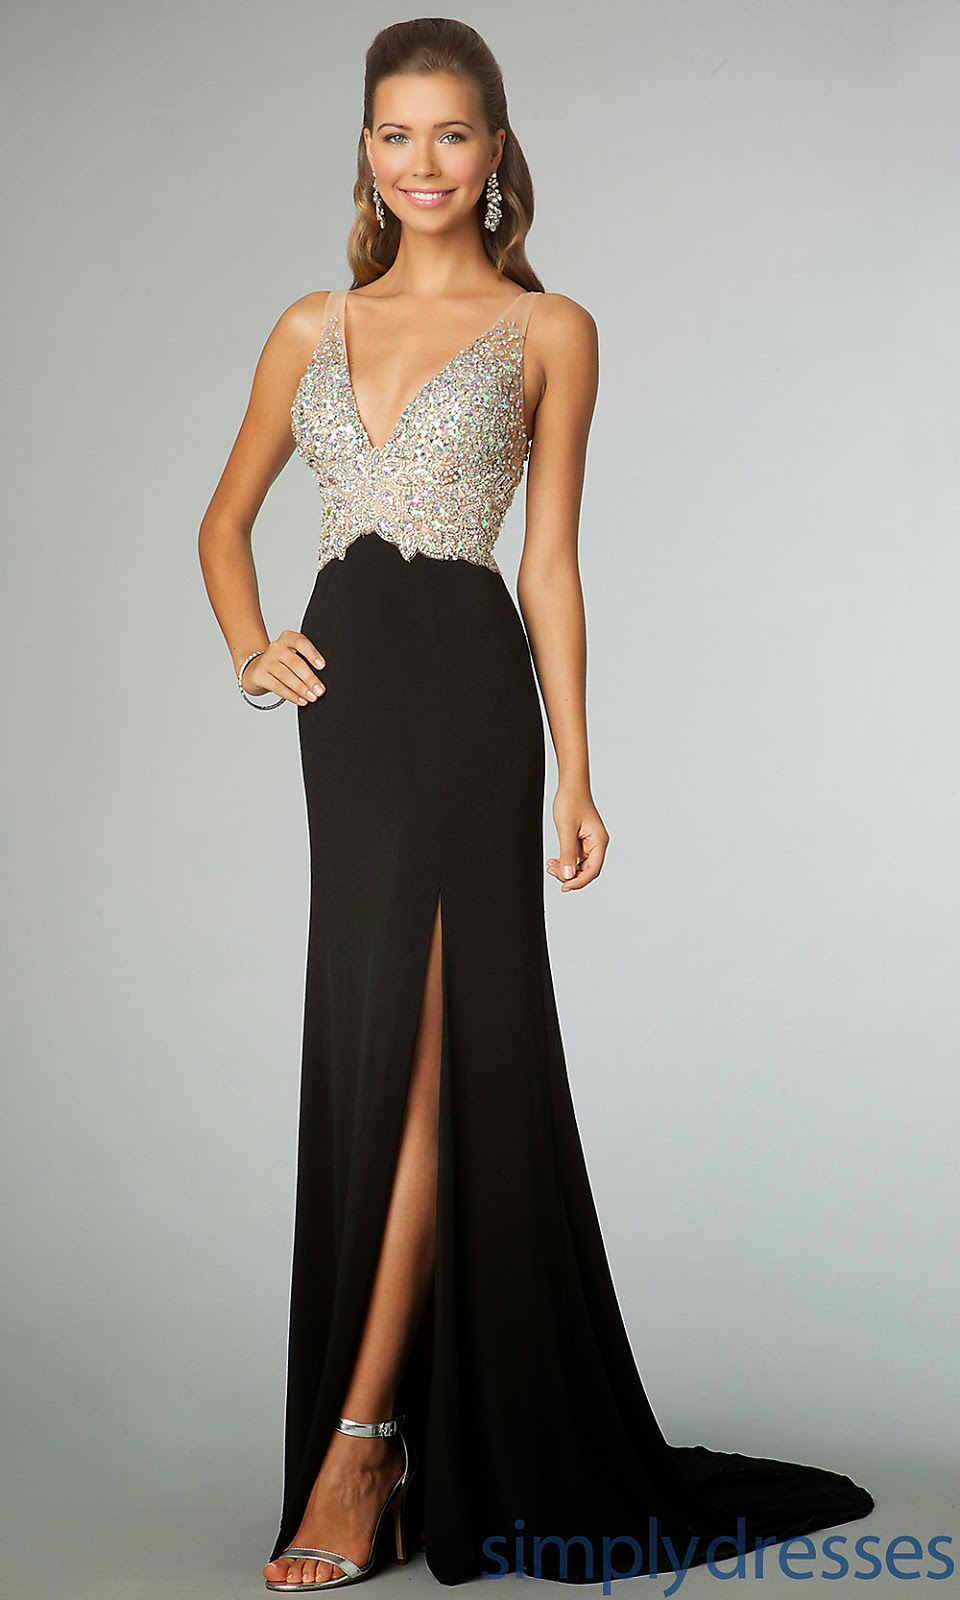 Images of Dillards Black Prom Dresses - Reikian